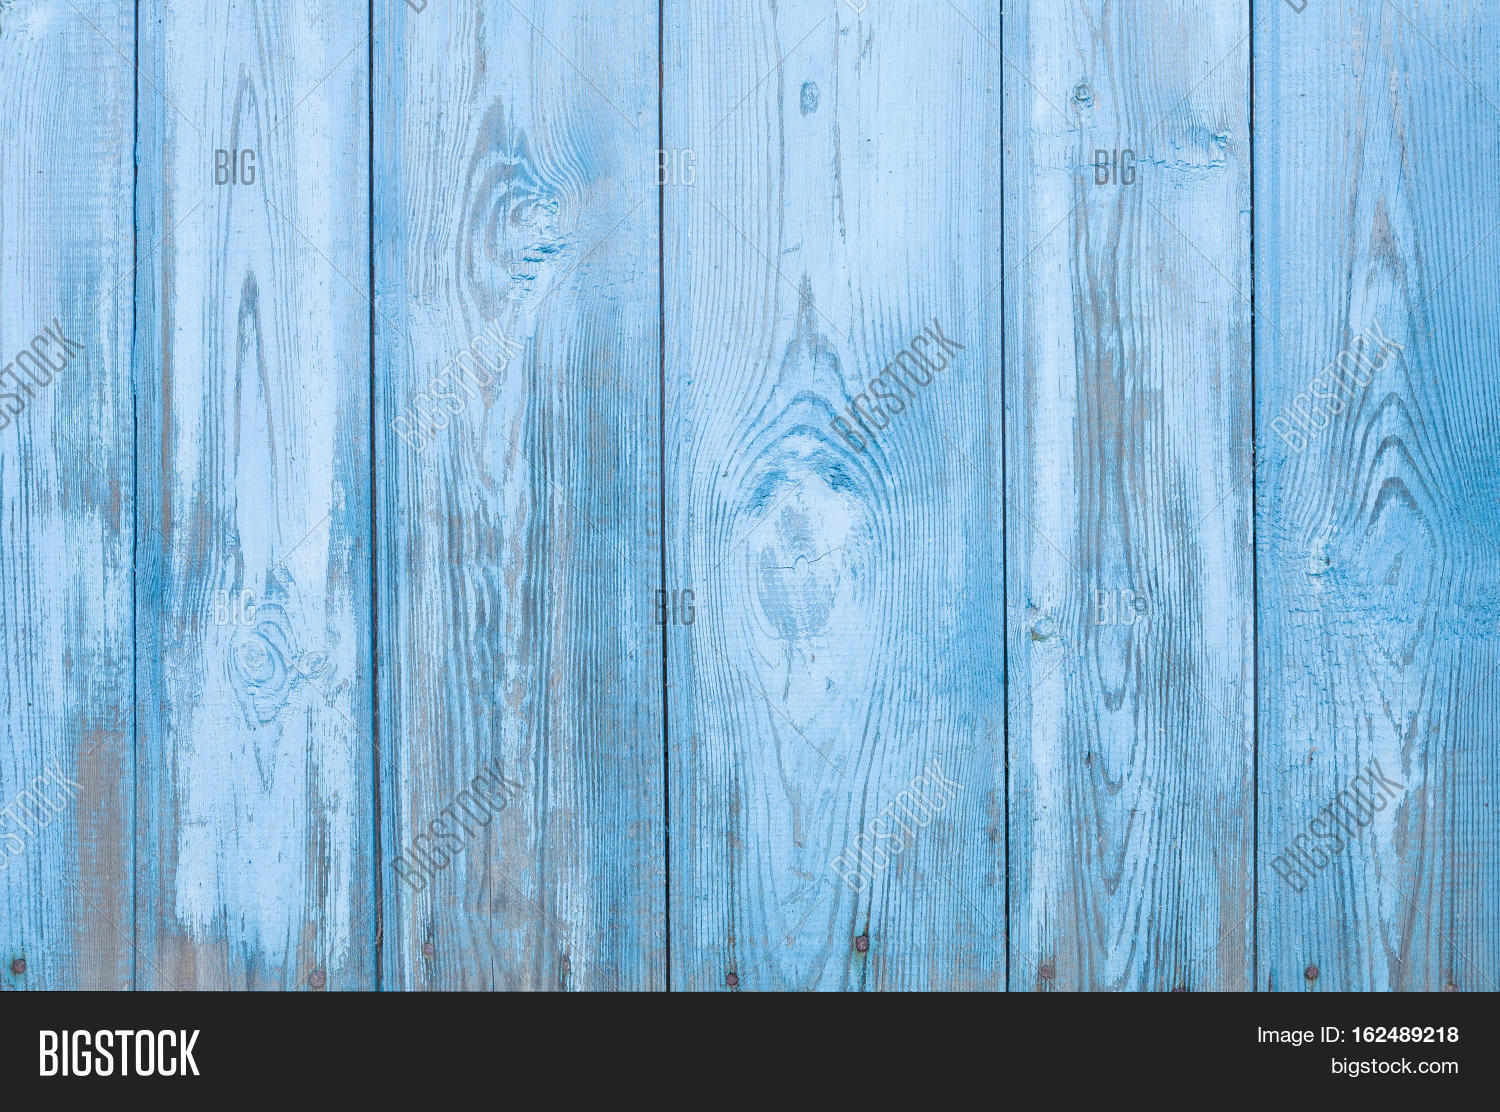 horizontal wood fence texture. Simple Fence Horizontal Wood Fence Background Natural Rustic Old Board Wall Shabby  Blue Color Inside Horizontal Wood Fence Texture